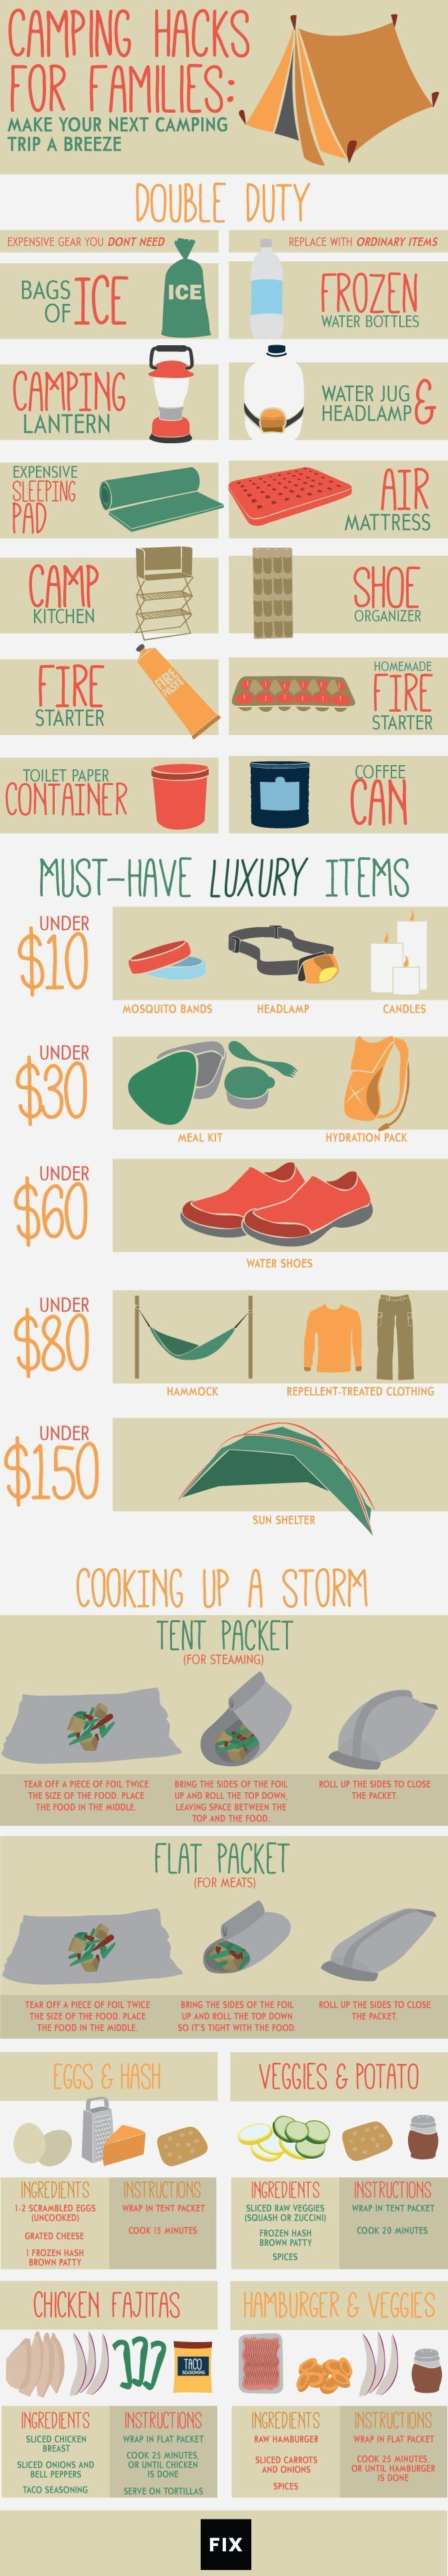 416 best Camping images on Pinterest | Campsite, Camping ideas and ...